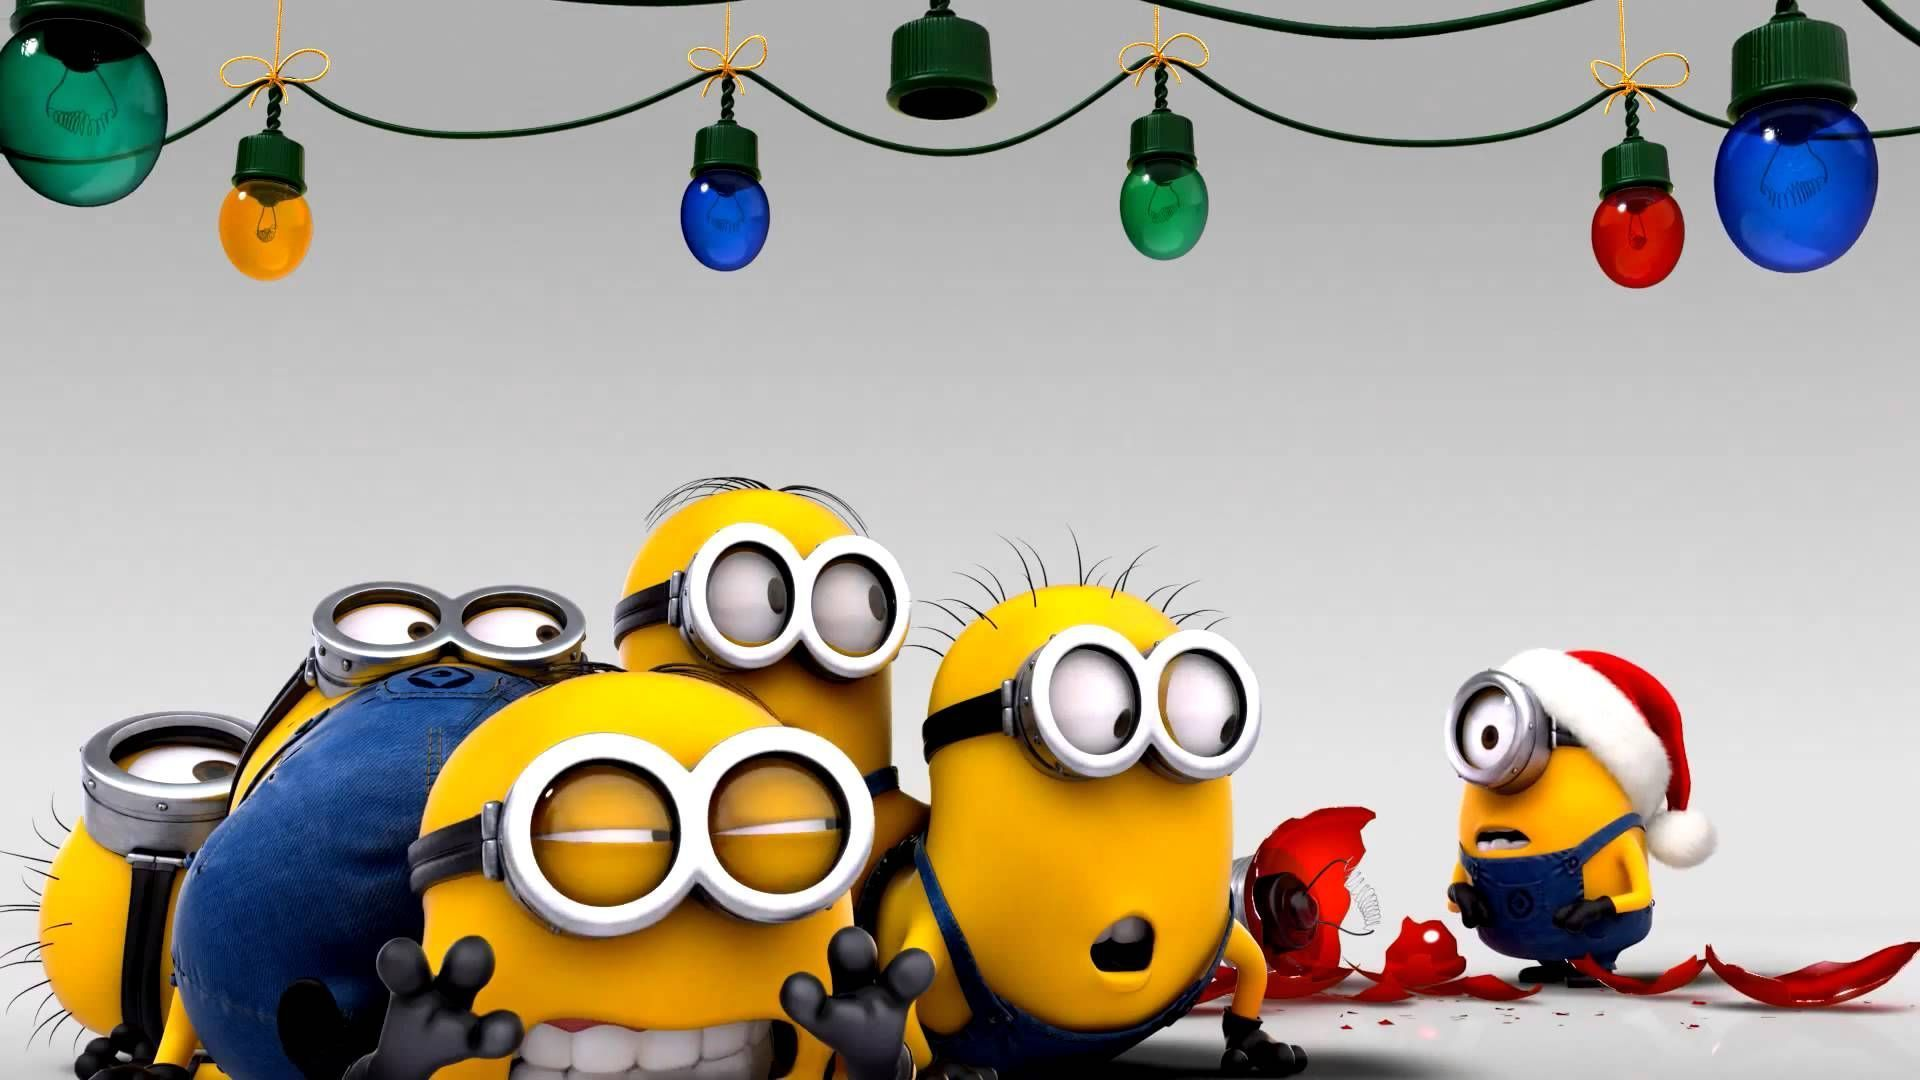 ... Merry Christmas Personalise Name · Christmas Minions Wallpapers Group  47 ...